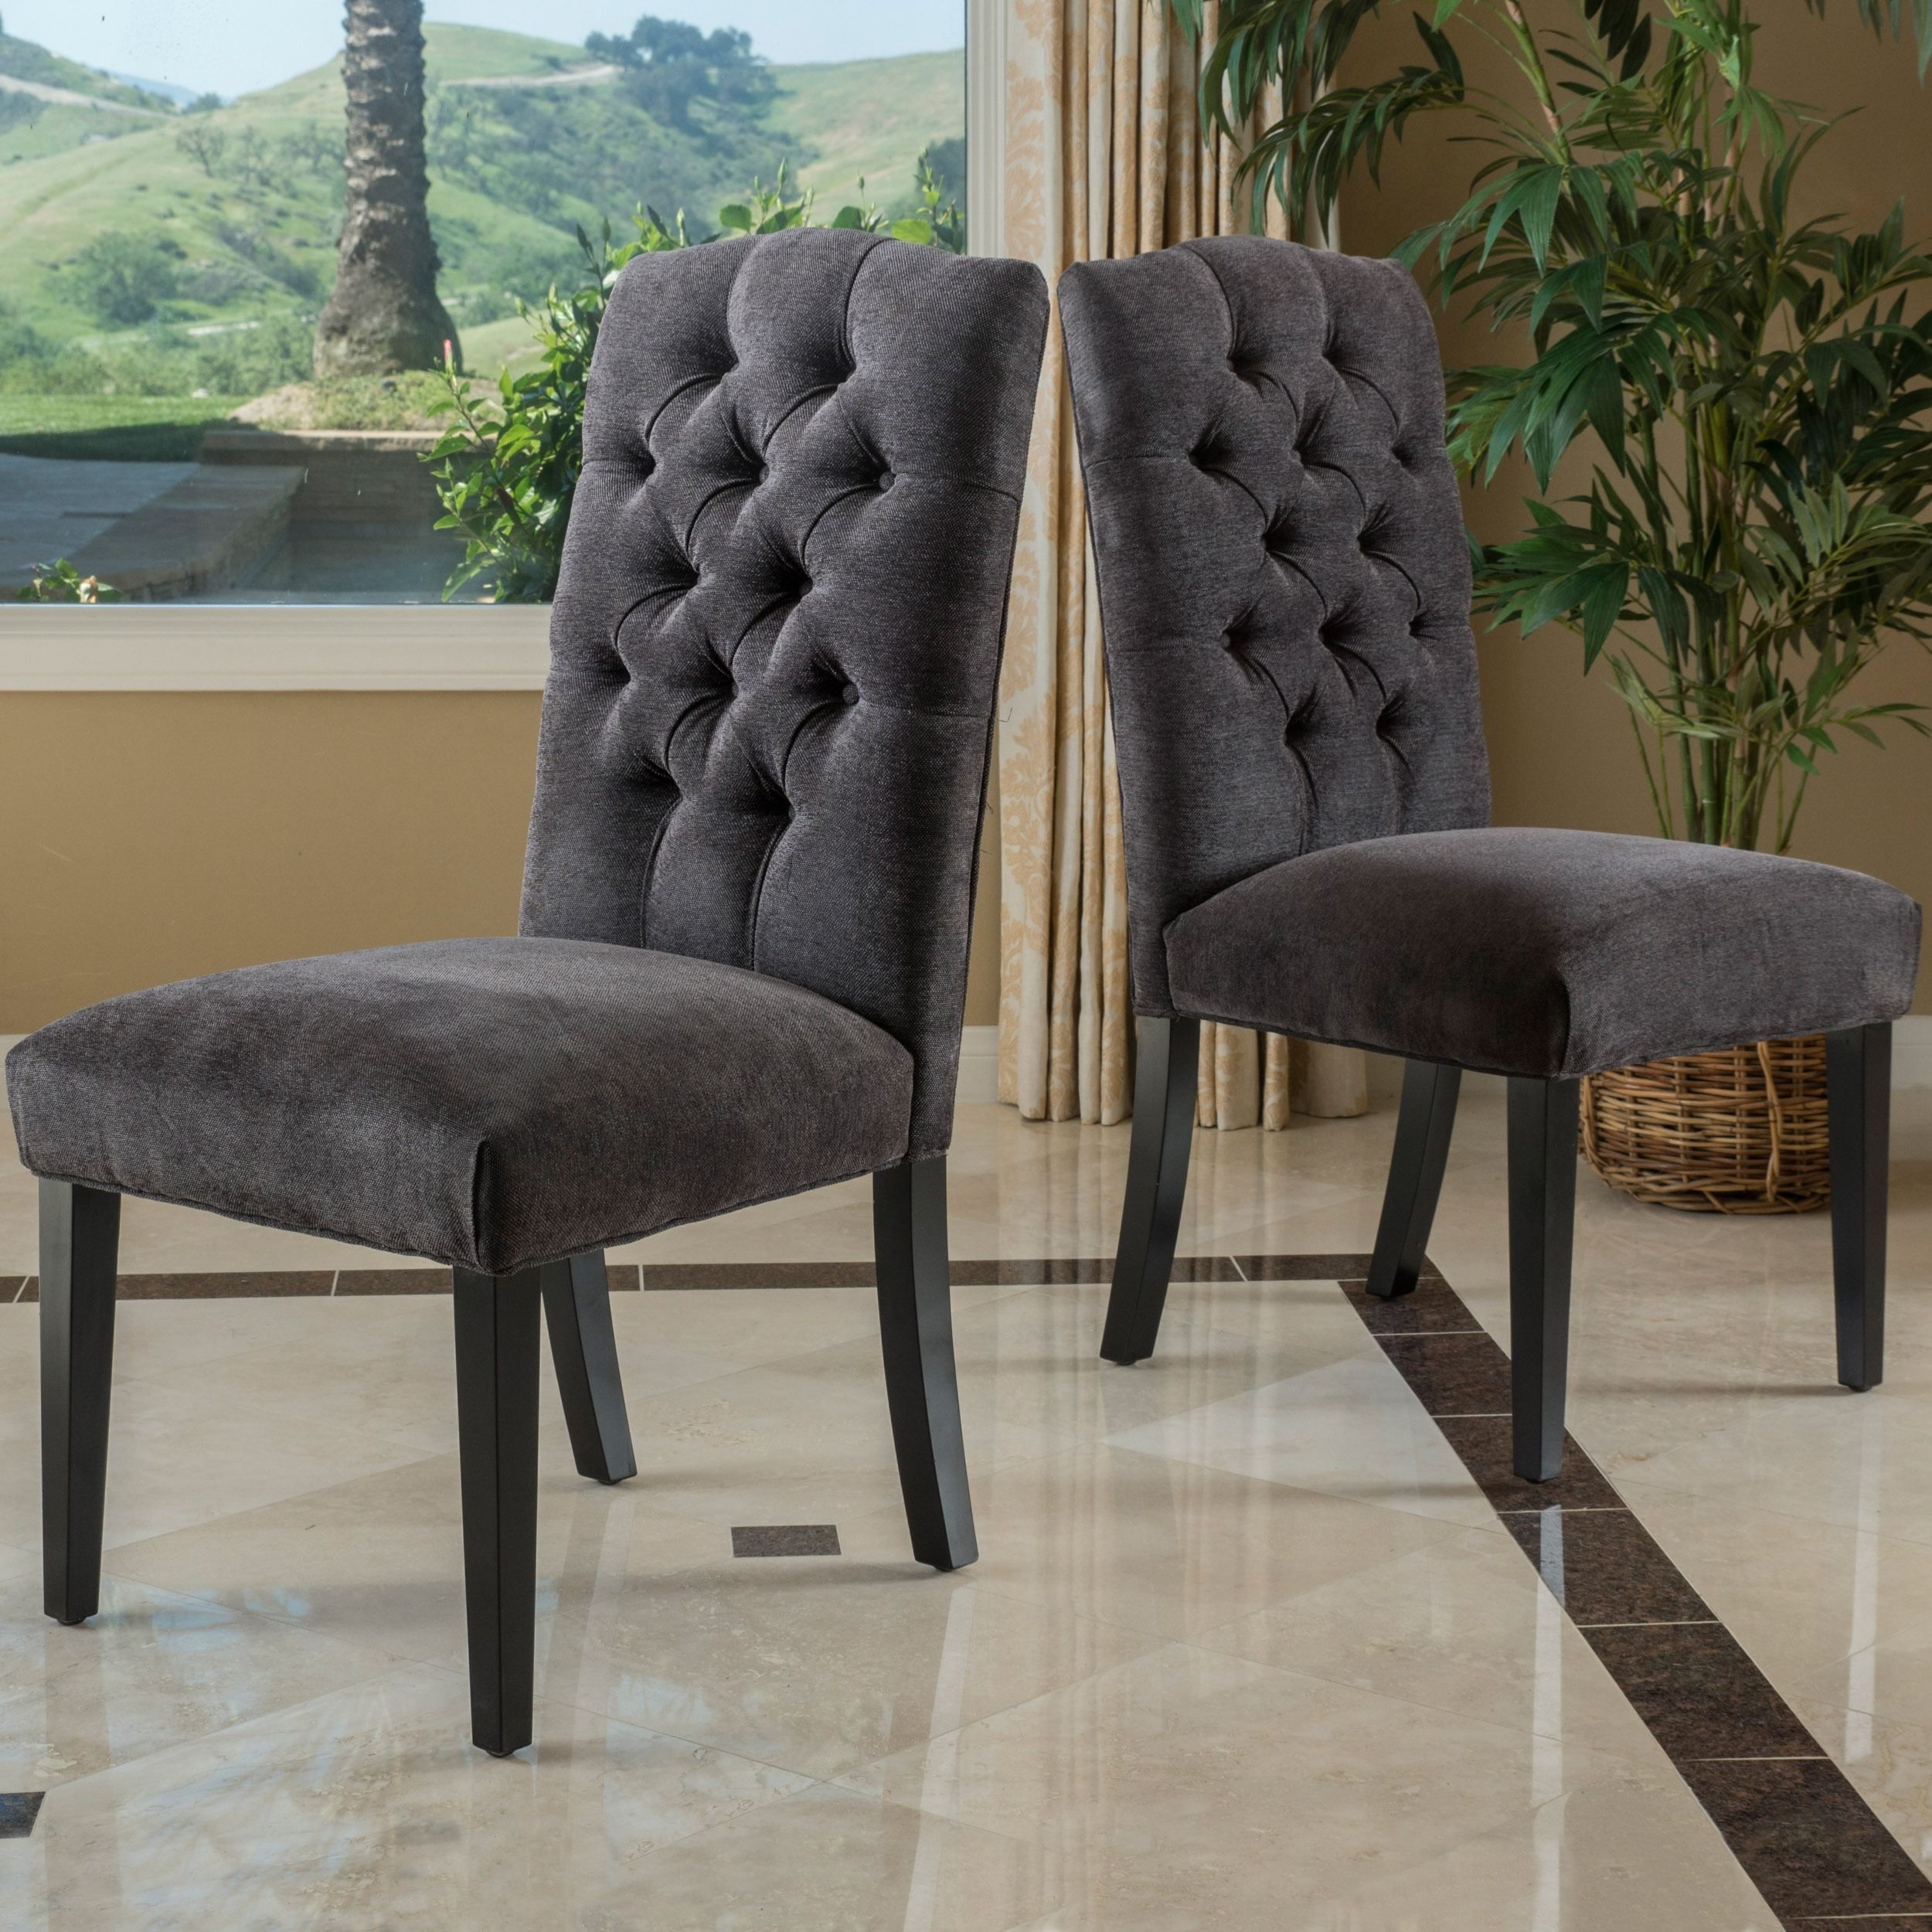 Entertain in style with this set of two grey upholstered dining